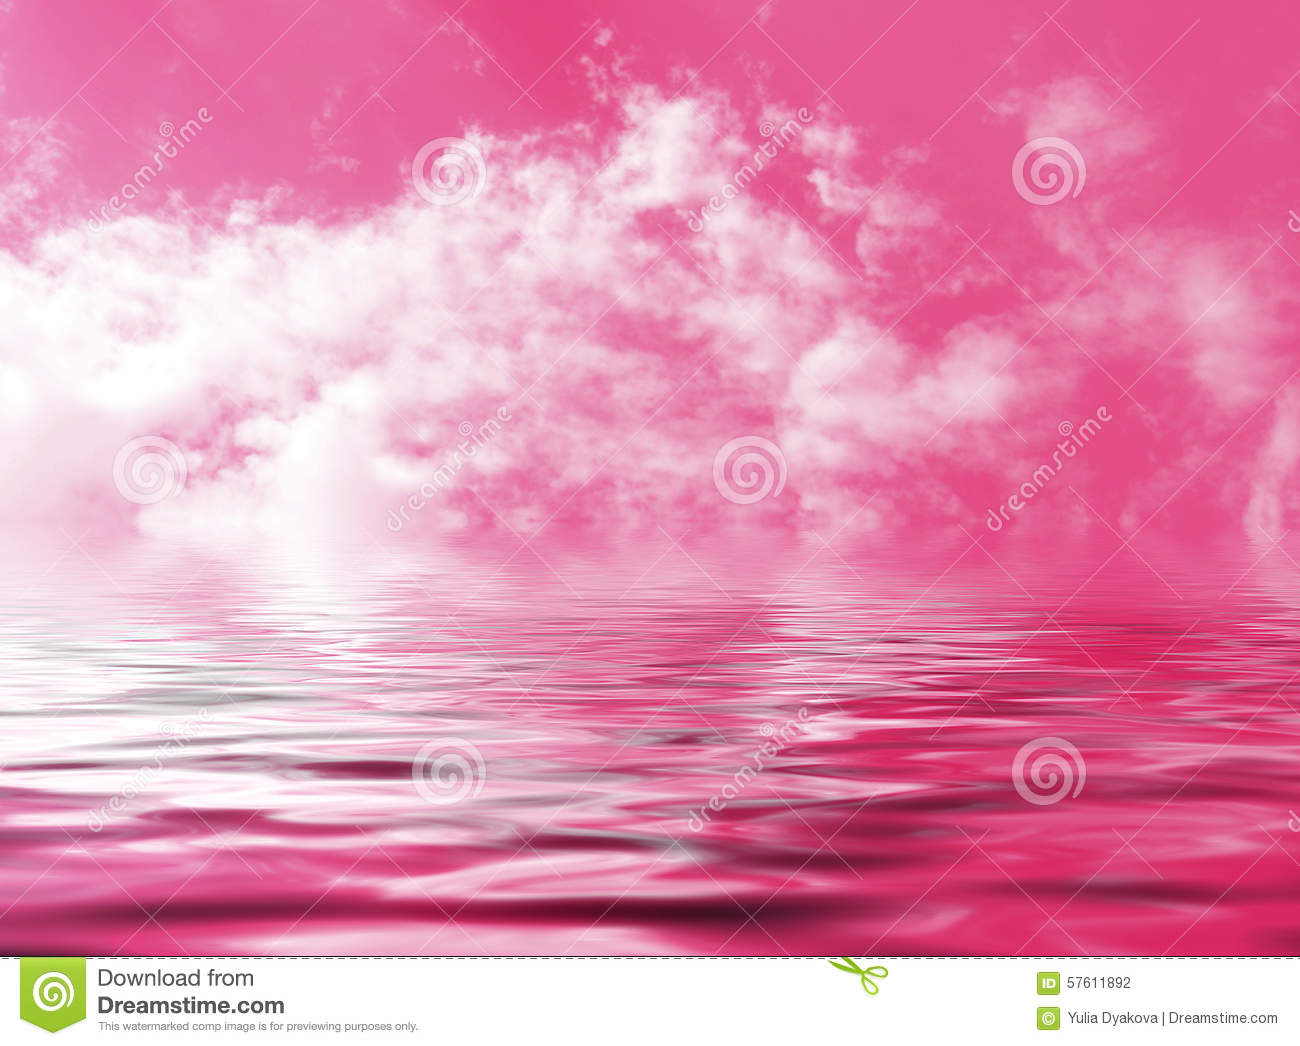 Pink sky with clouds reflected in the abstract fantasy water